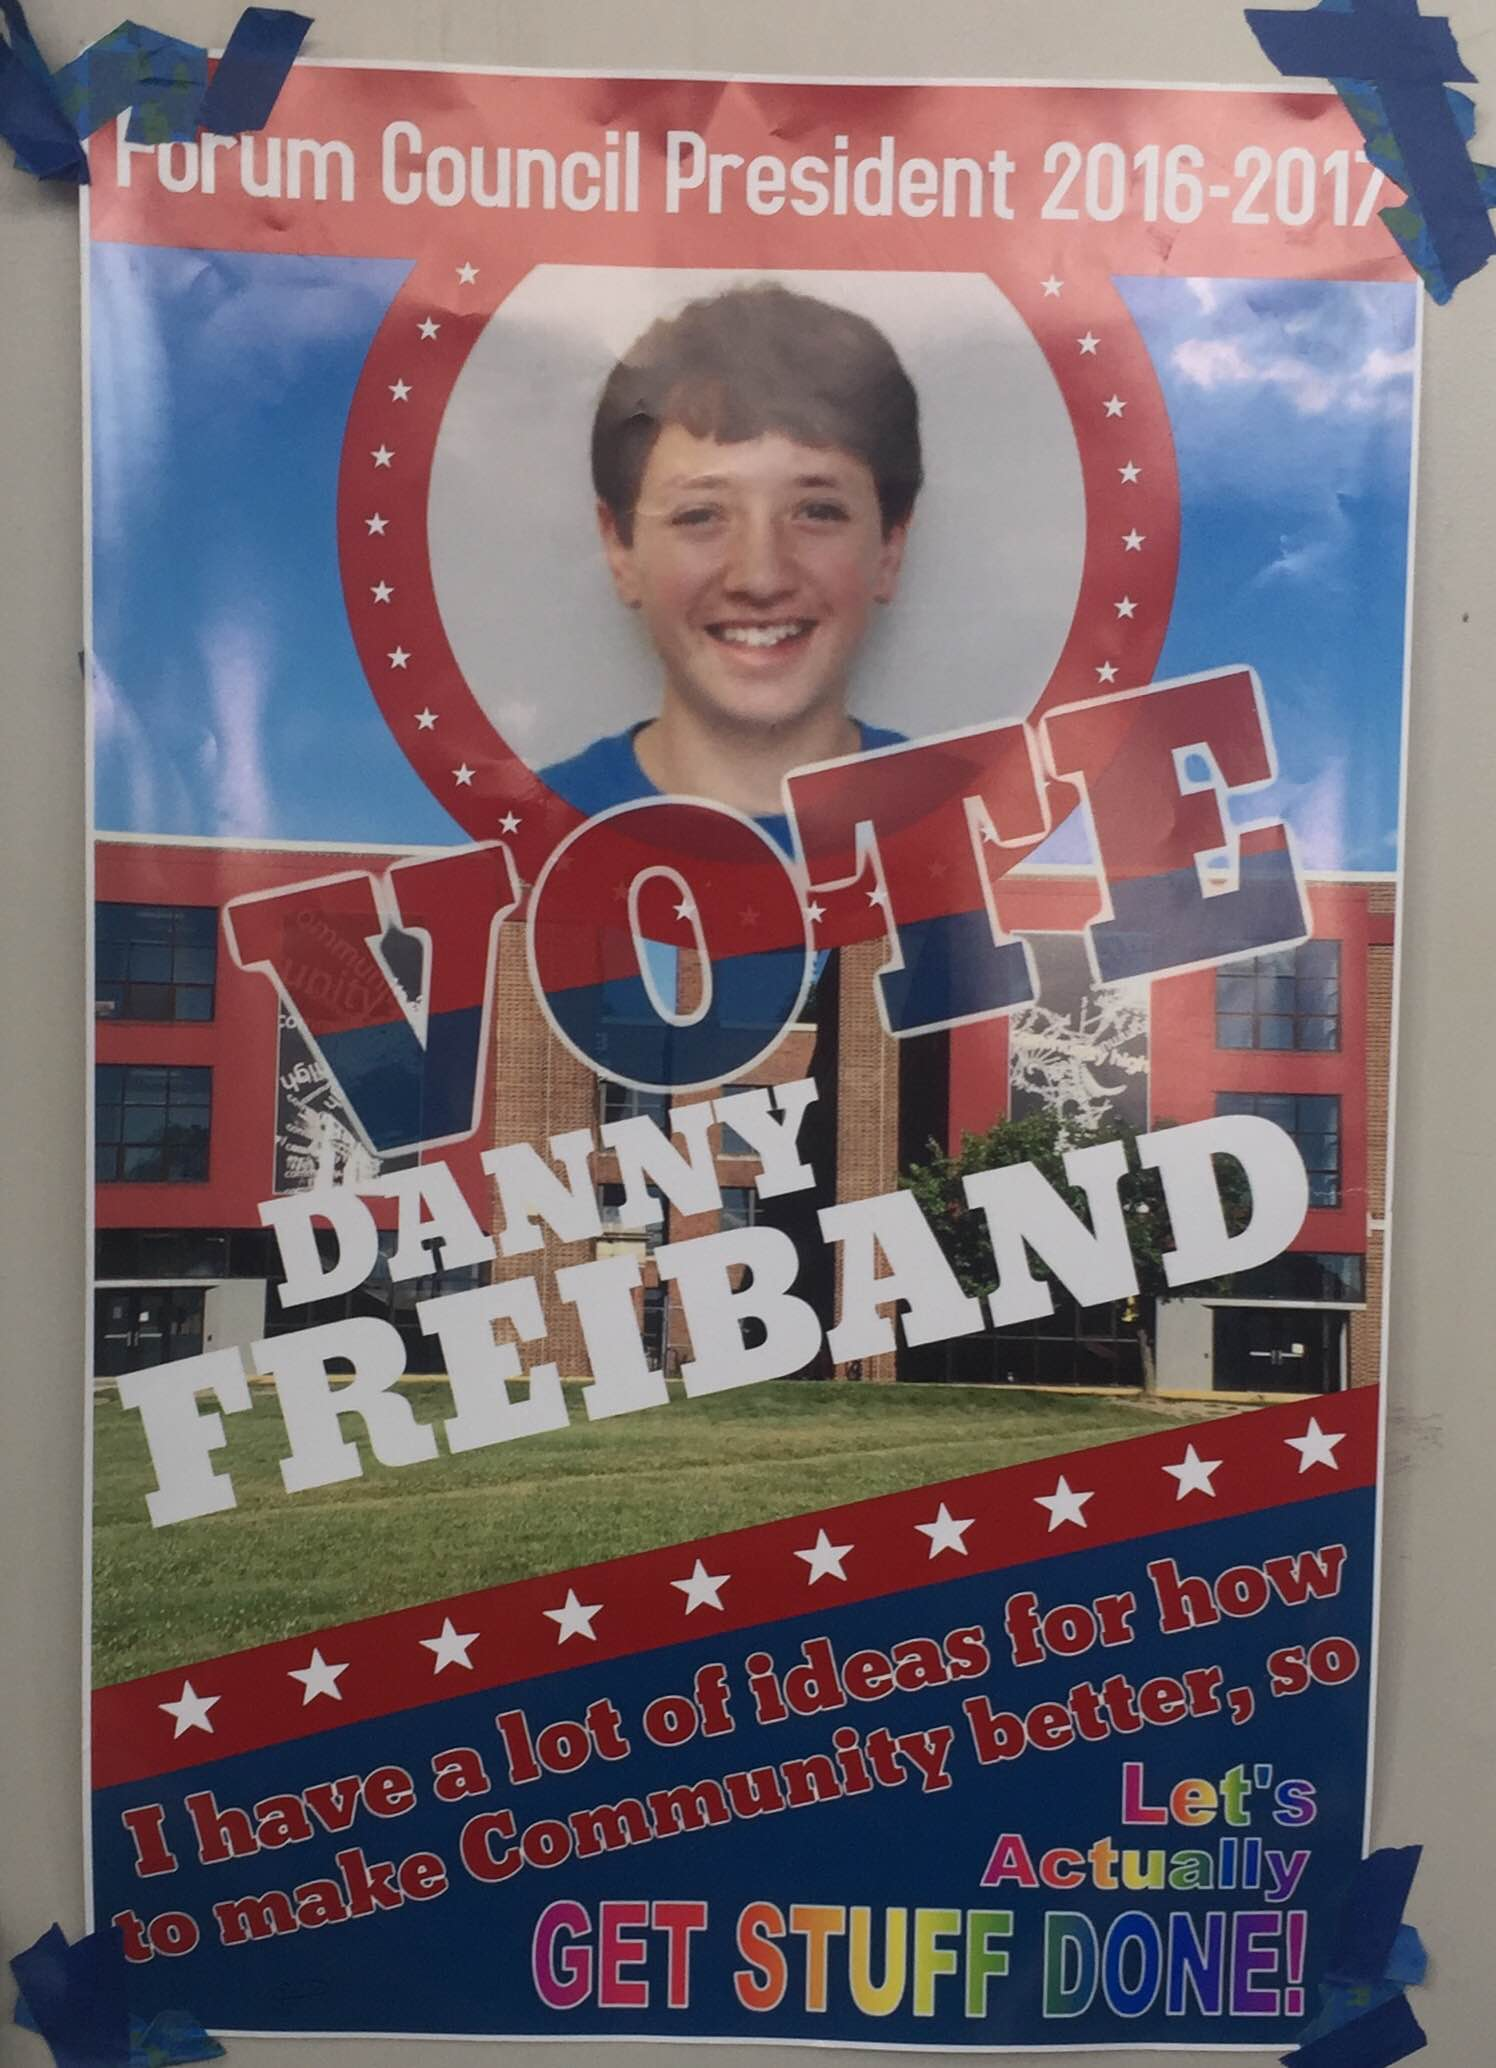 A poster of presidential candidate Danny Freiband on a CHS hallways door.